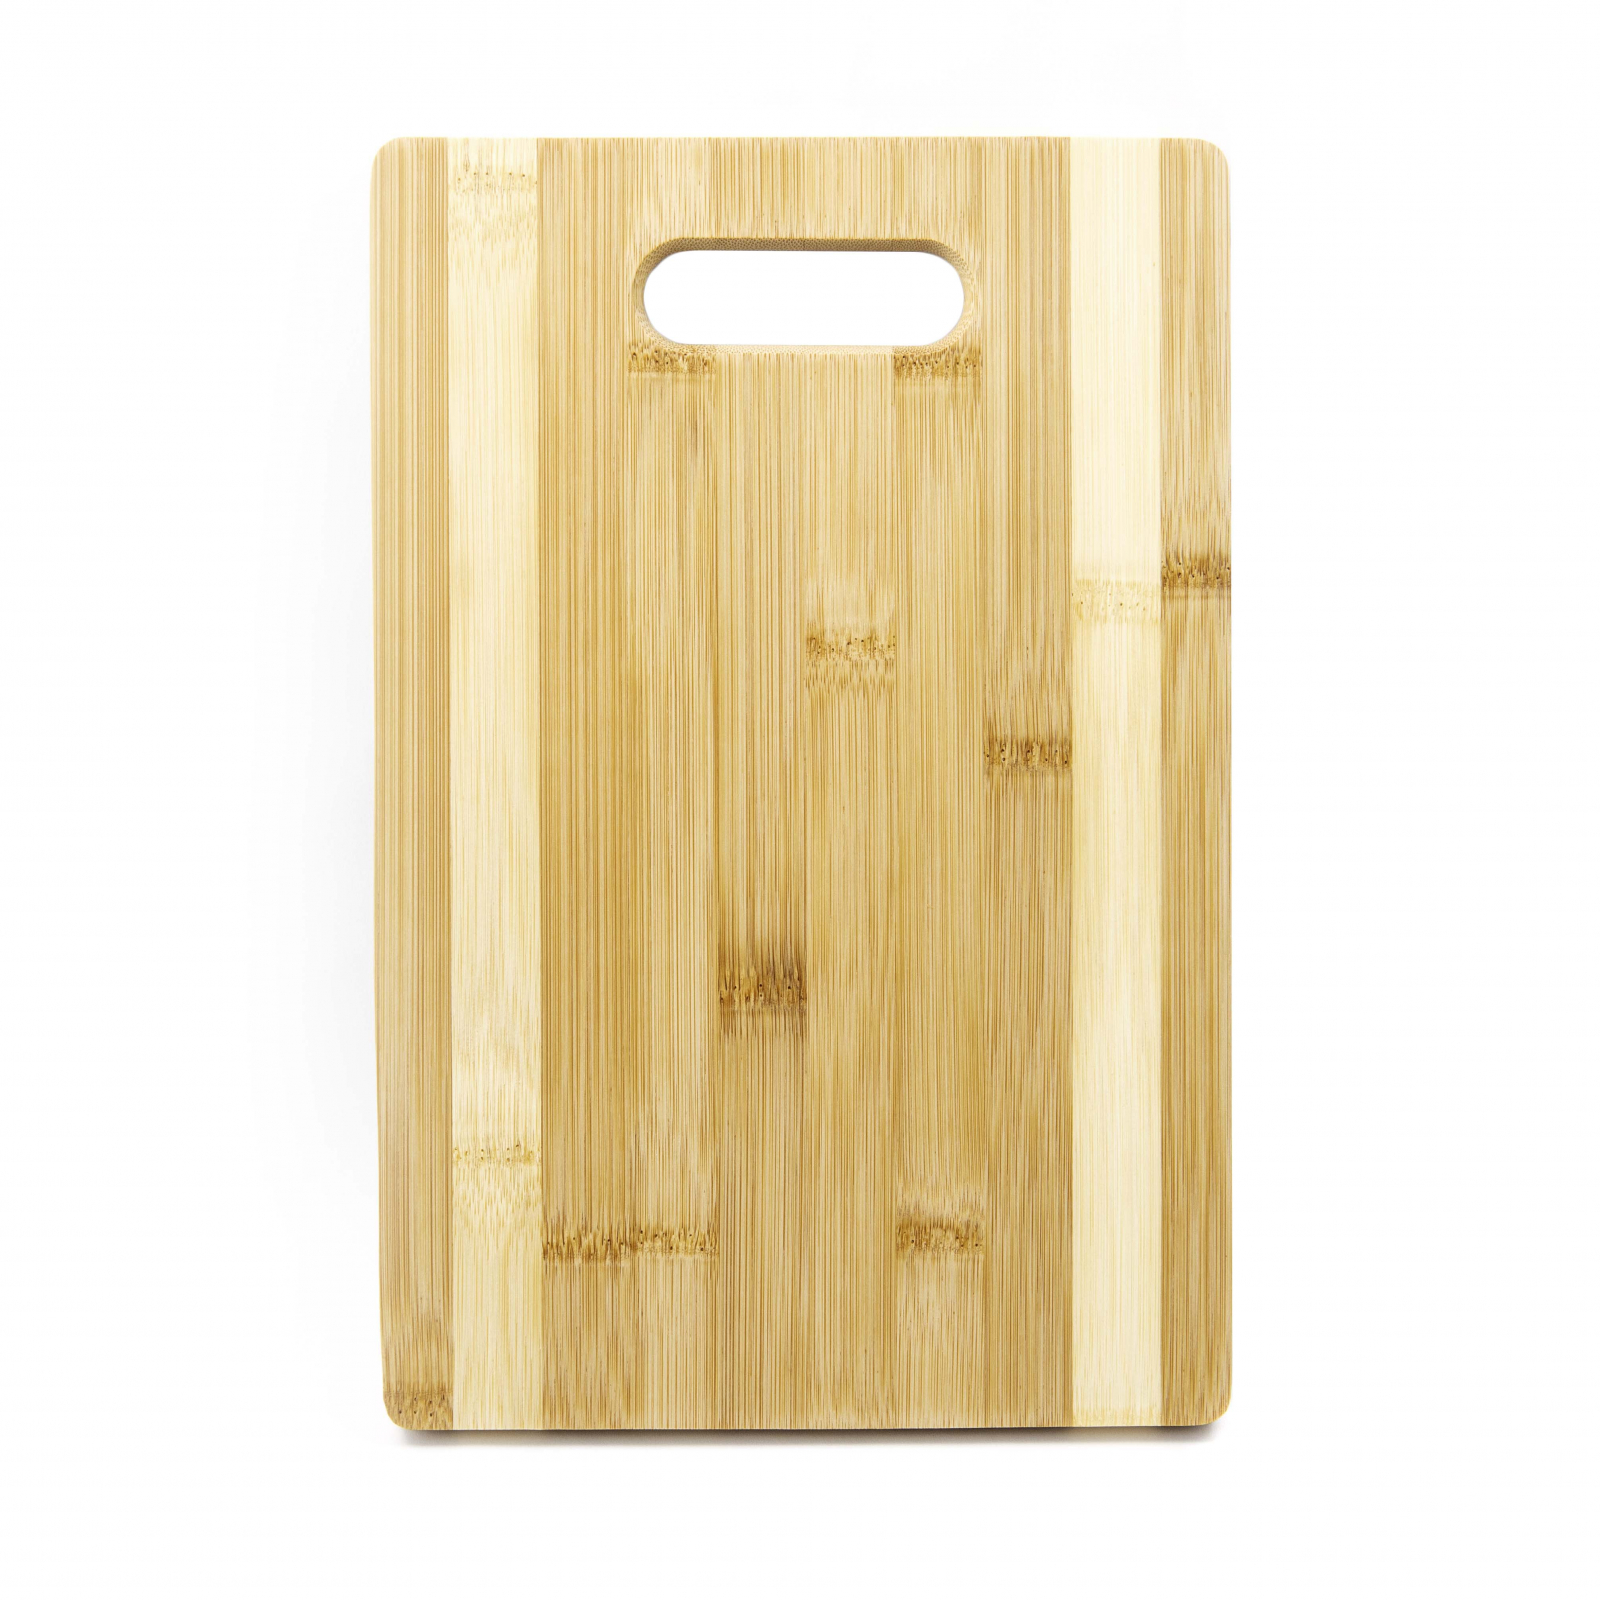 Beille Kitchen Bamboo Cutting Board 12mm Thick Food Prep